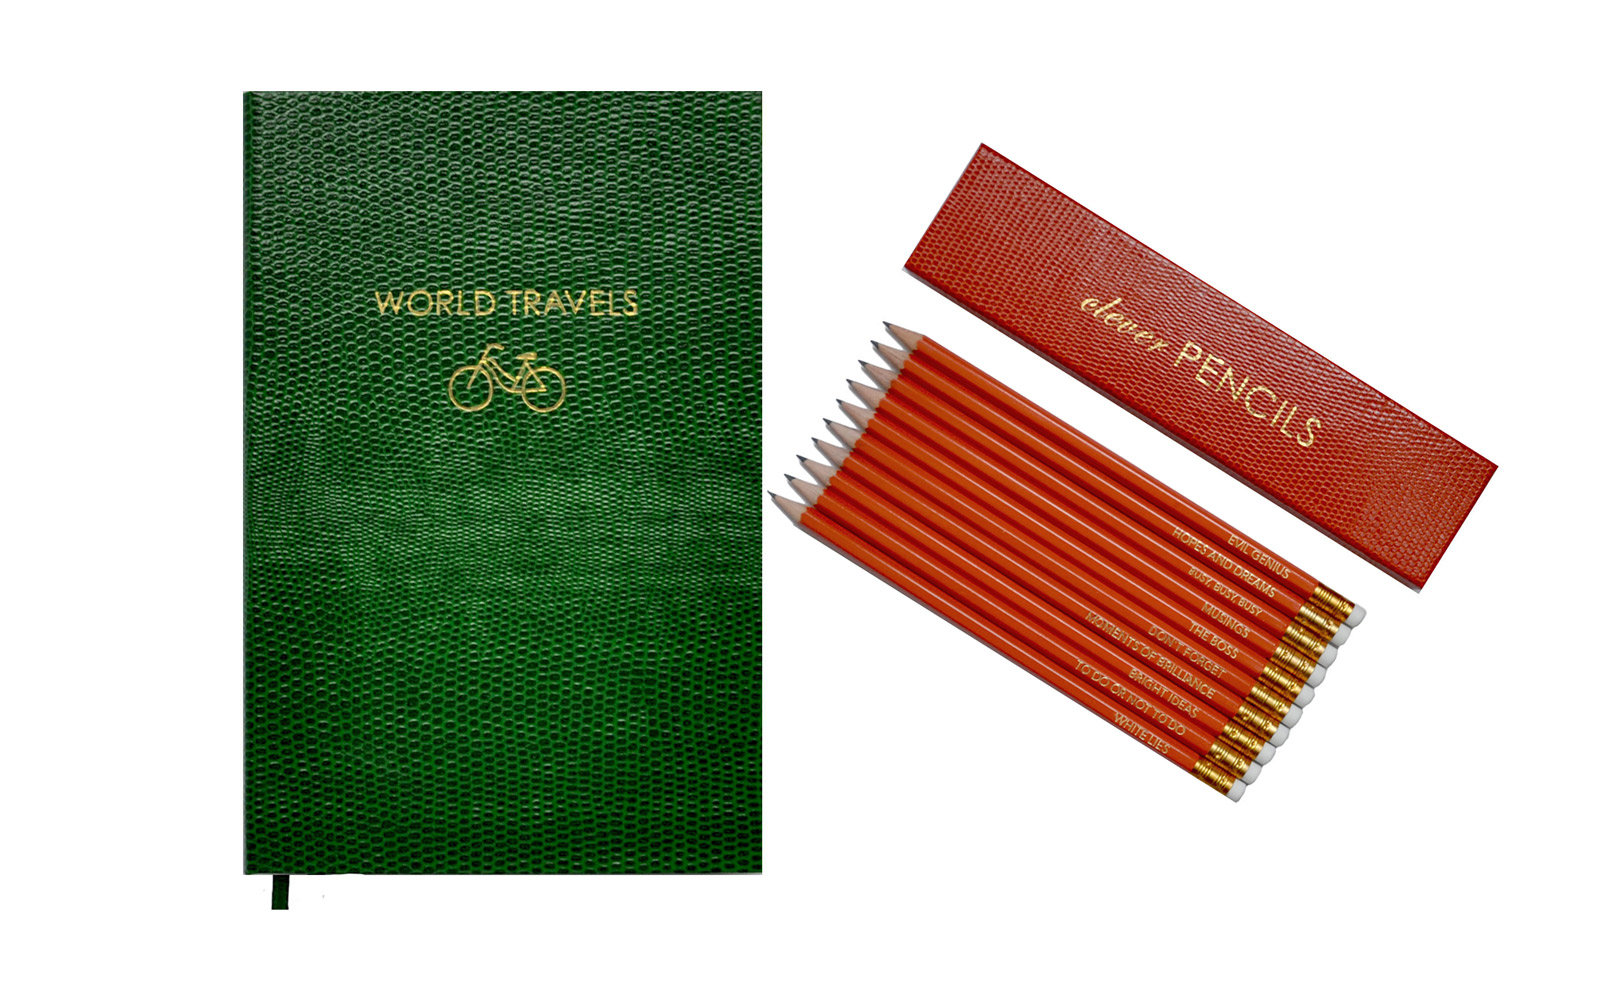 Sloane Stationery World Travels Pocket Notebook & Clever Pencils